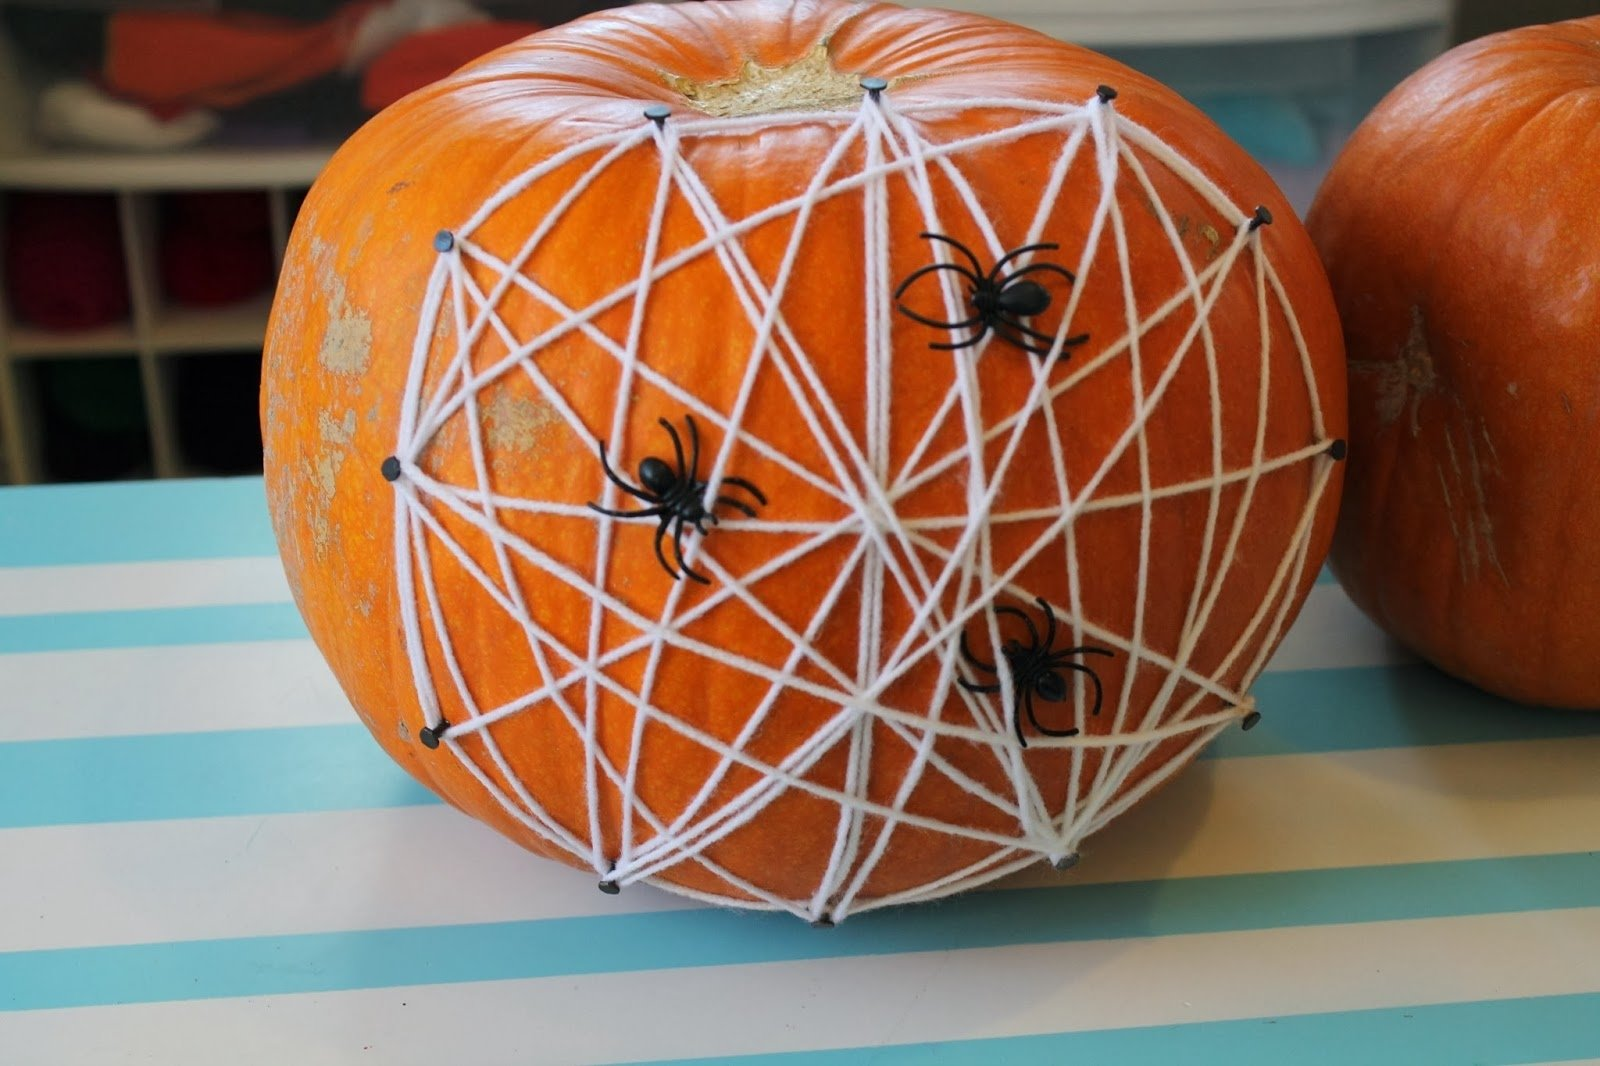 10 Unique Decorating Pumpkin Ideas Without Carving no carve pumpkin ideas find it make it love it 2 2020